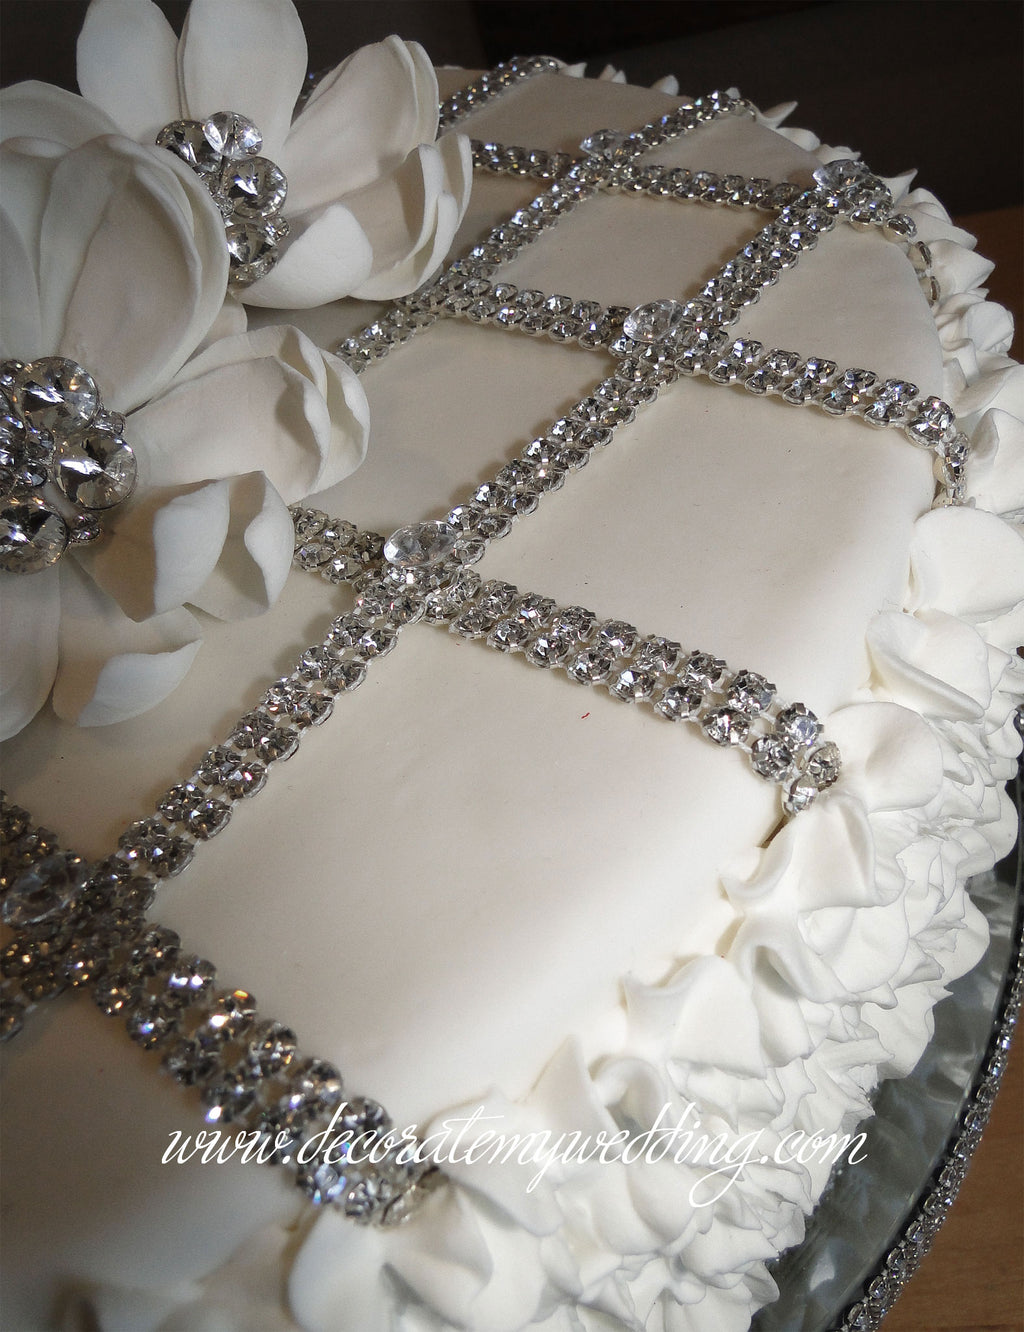 The grid design of this dummy wedding cake layer can be added to the Rachel Ruffle layers for more interest and variation.